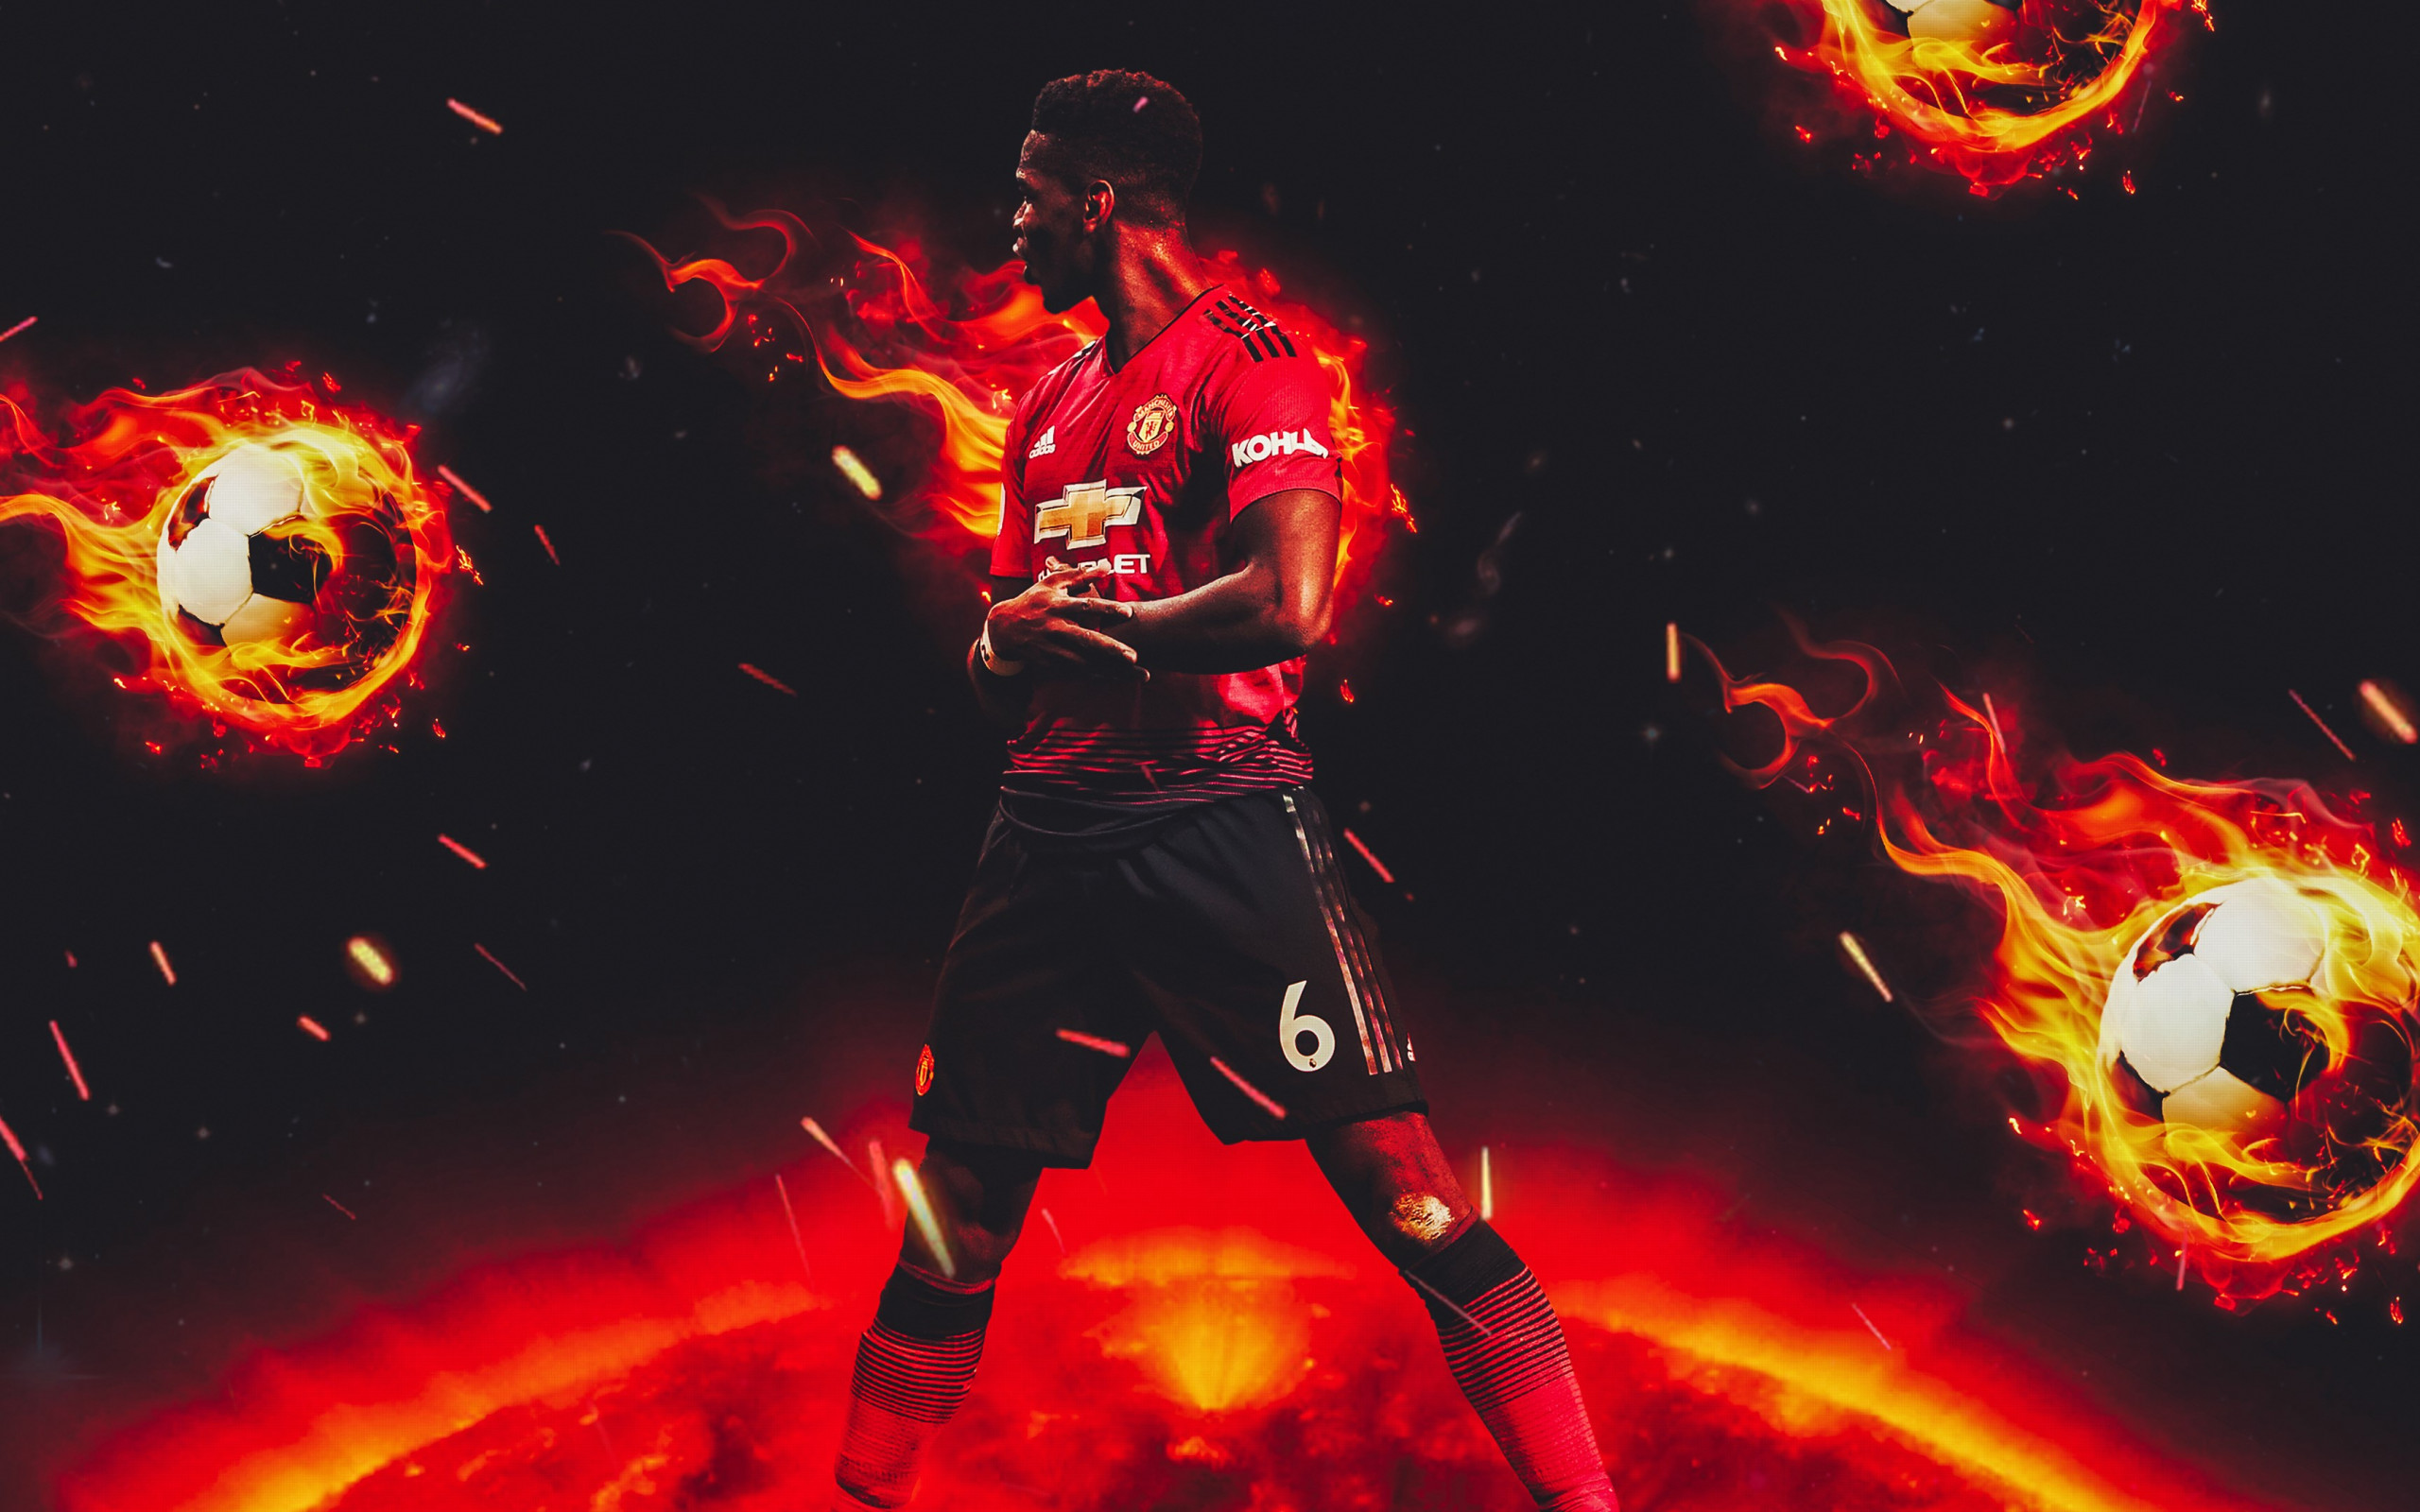 Paul Pogba for Manchester United wallpaper 2560x1600